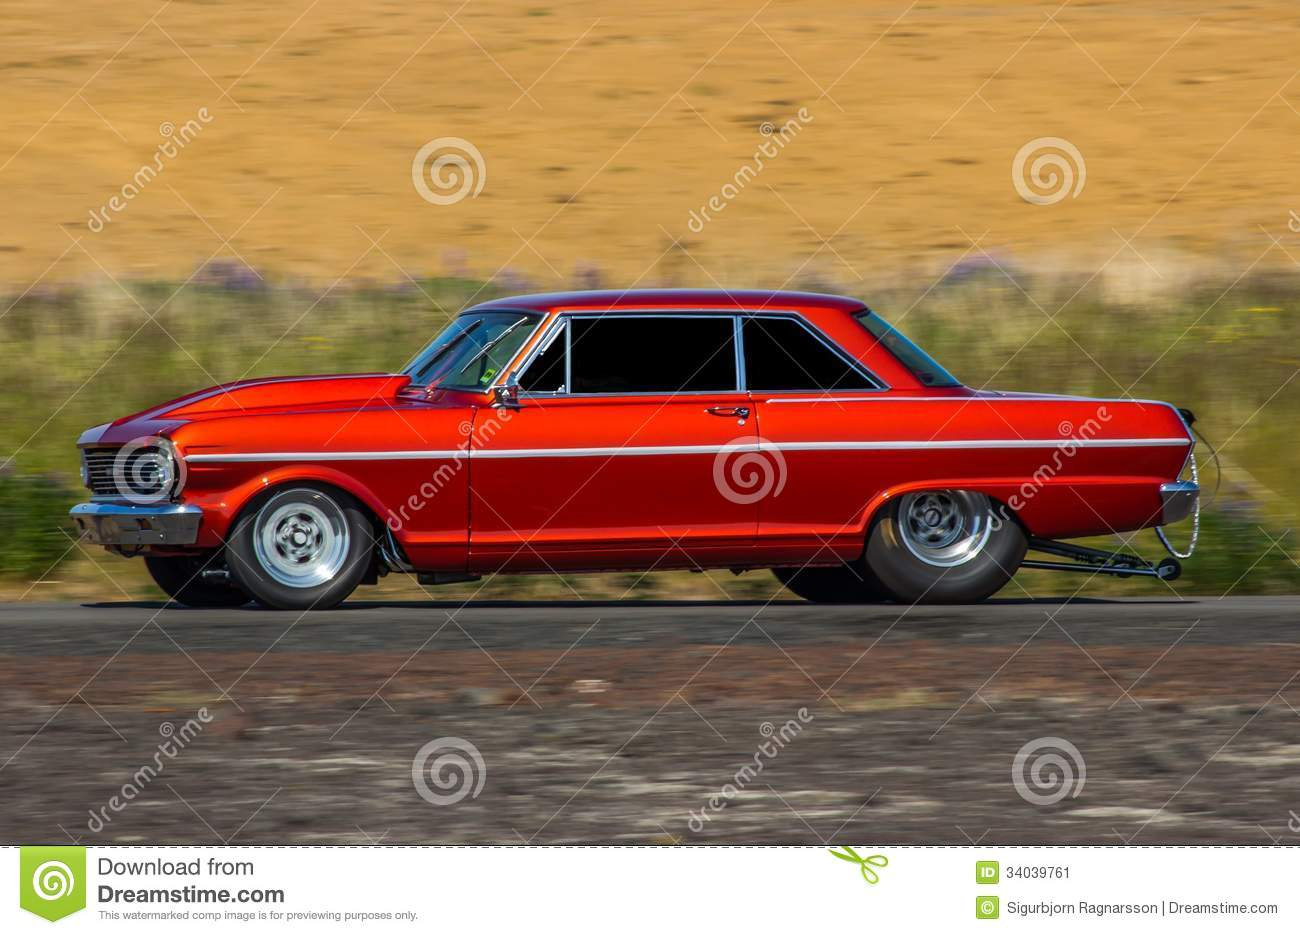 1965 Chevrolet Nova Stock Image Image Of Outdoors Burn 34039761